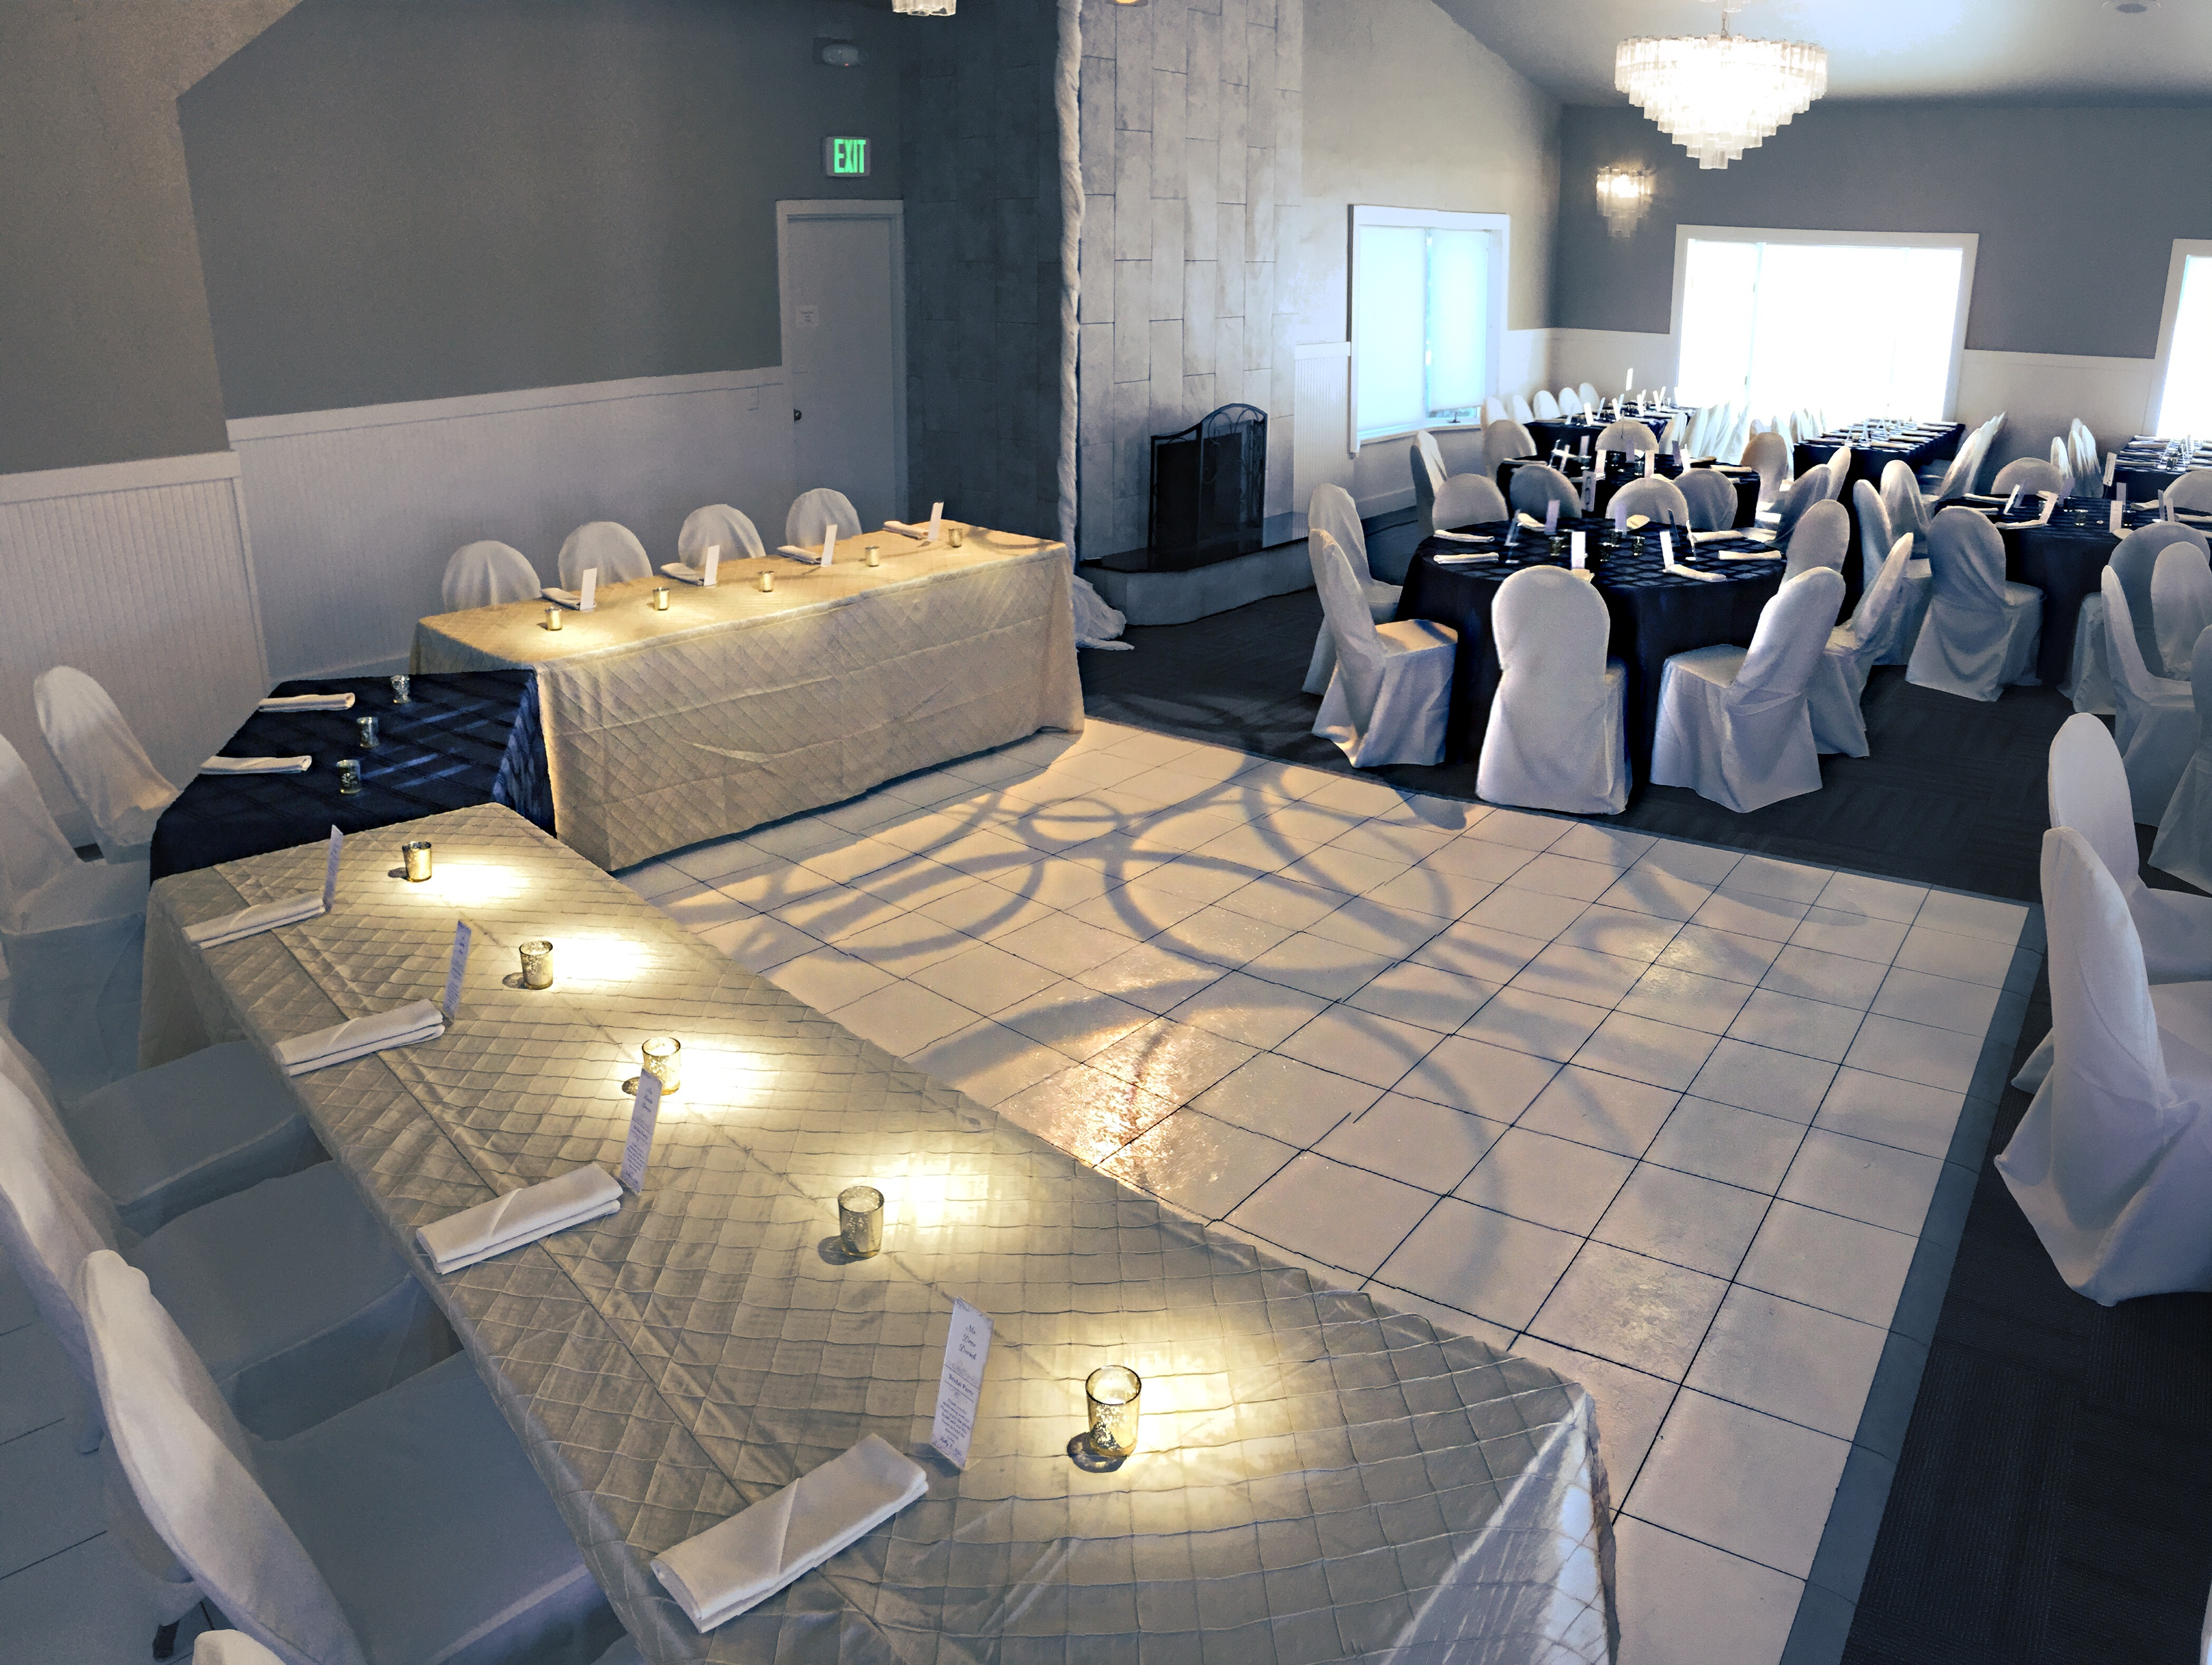 Weddings at eagle hills golf course for 12 by 12 dance floor